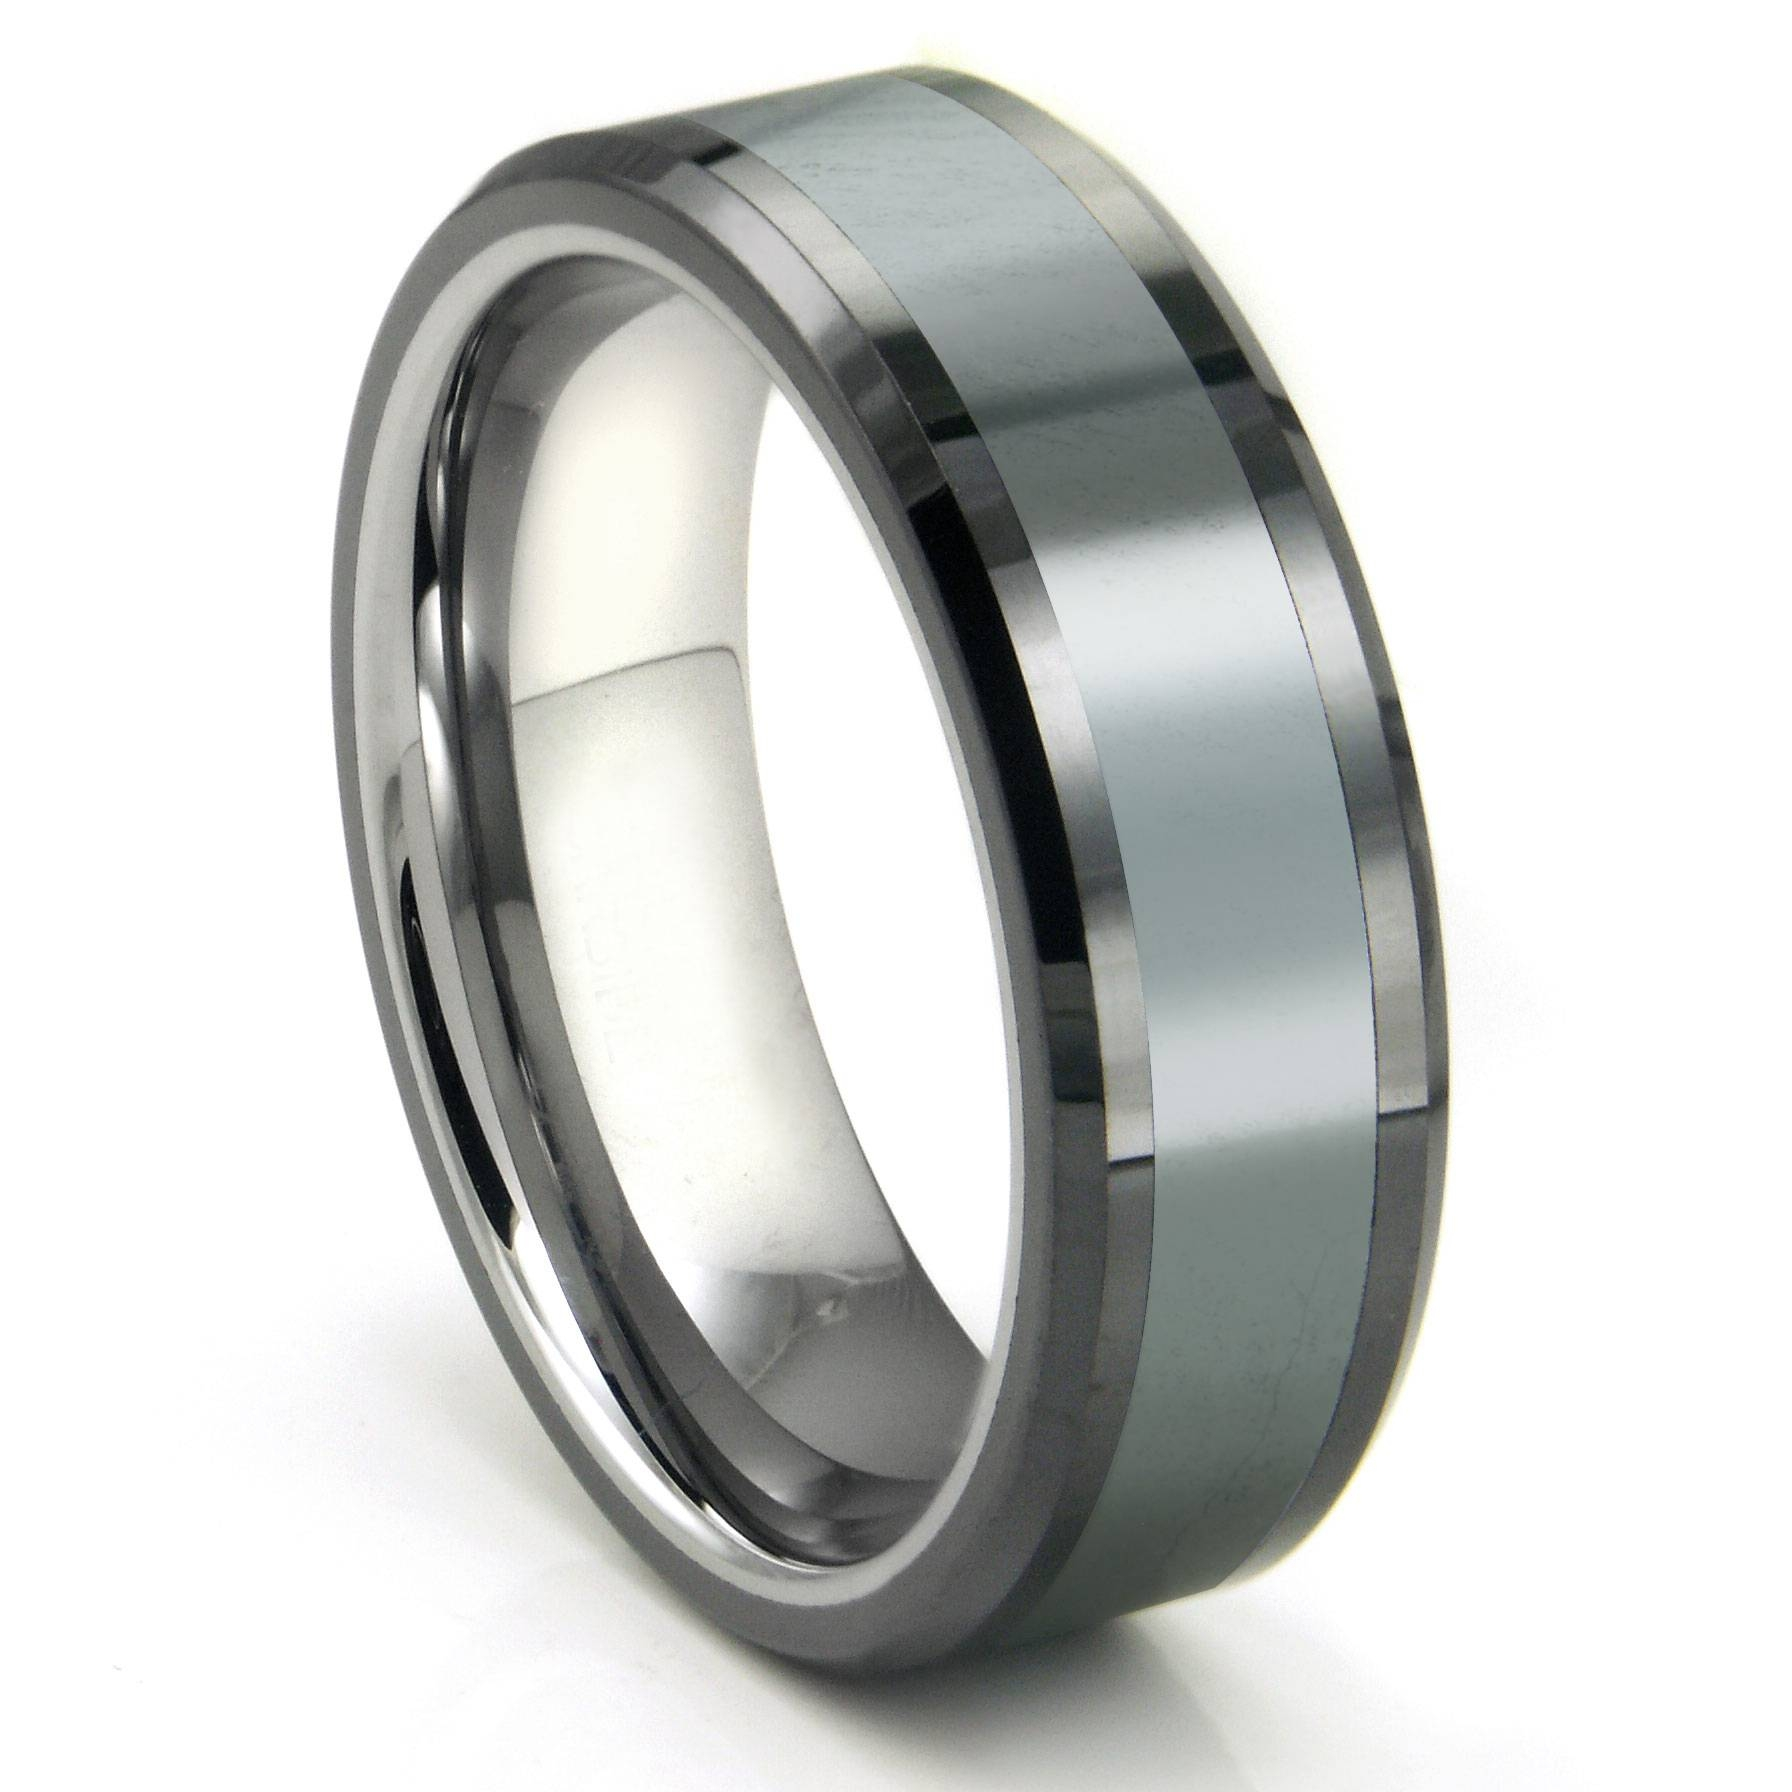 Mens Tungsten Rings & Wedding Bands – Titanium Kay With Regard To Mens Camo Tungsten Wedding Bands (View 9 of 15)